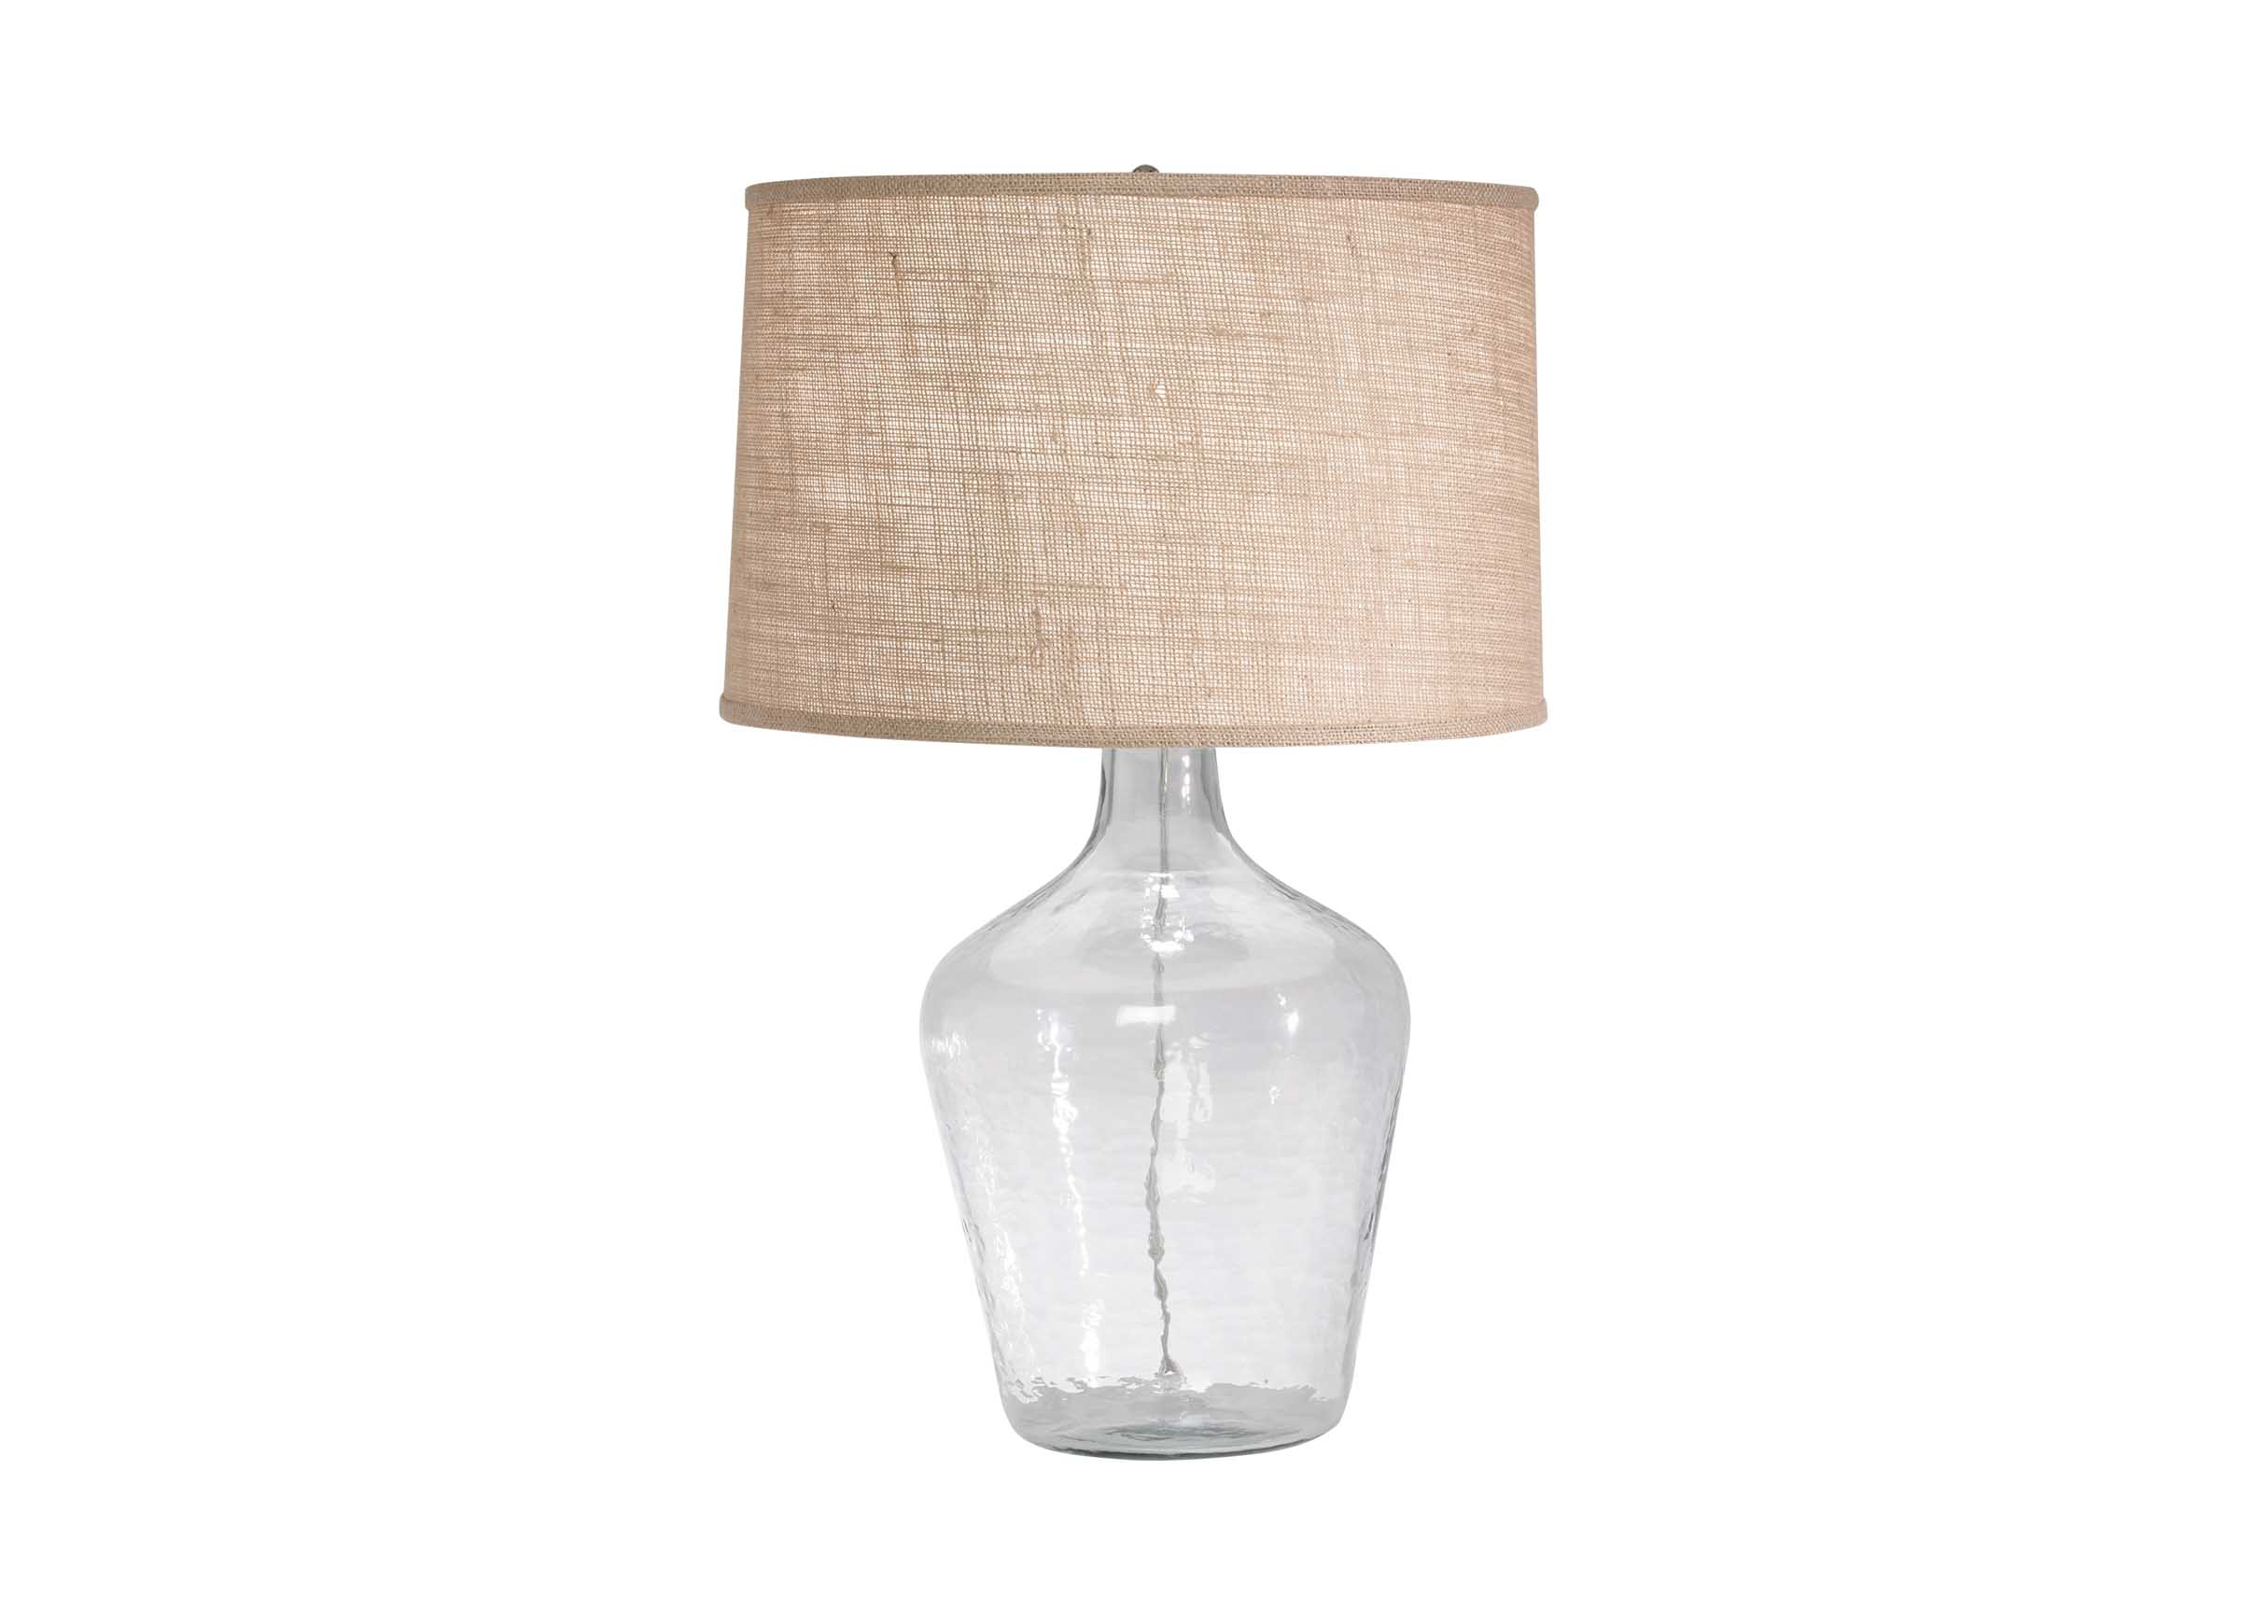 Images Glass Plum Jar Table Lamp , , Large_gray